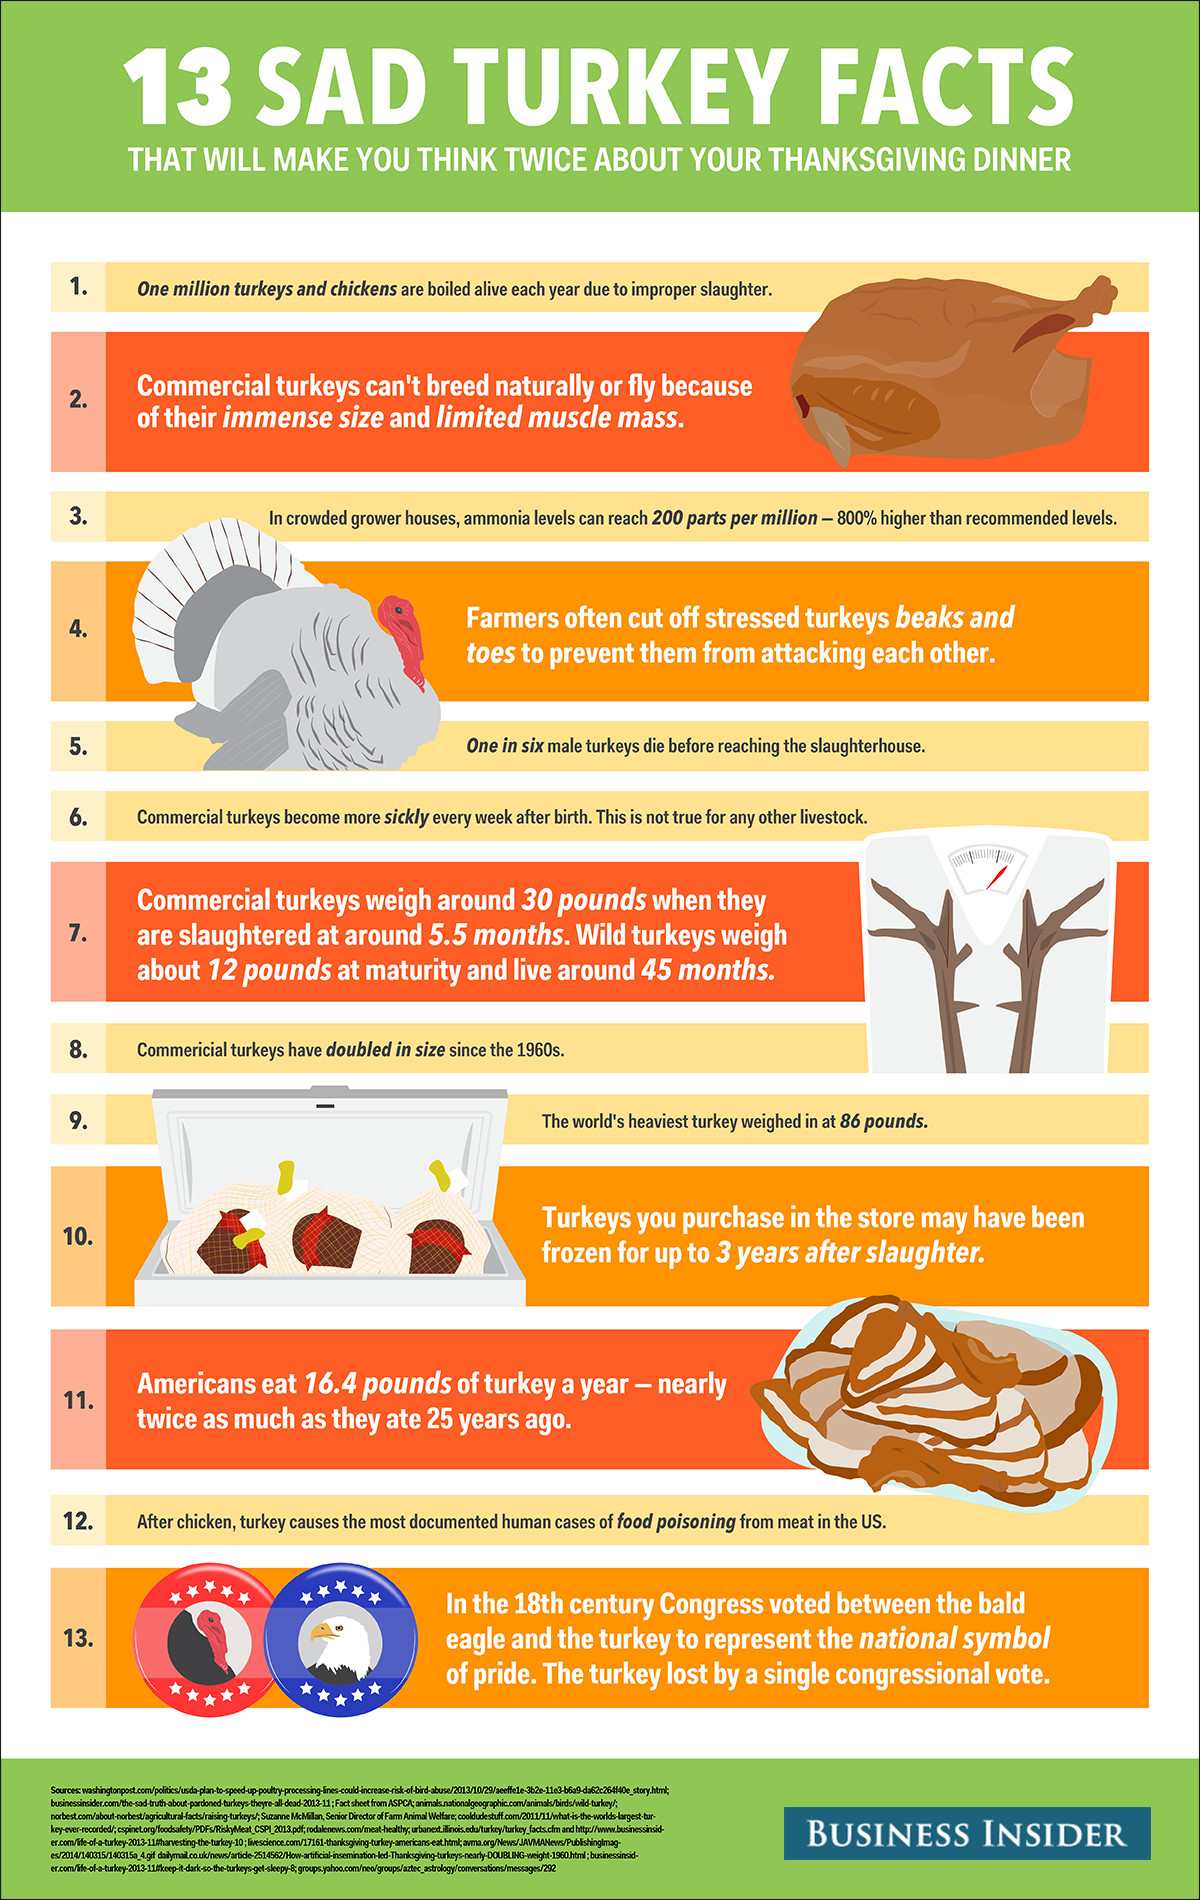 Turkey And Thanksgiving Facts  Sad Turkey Facts Business Insider